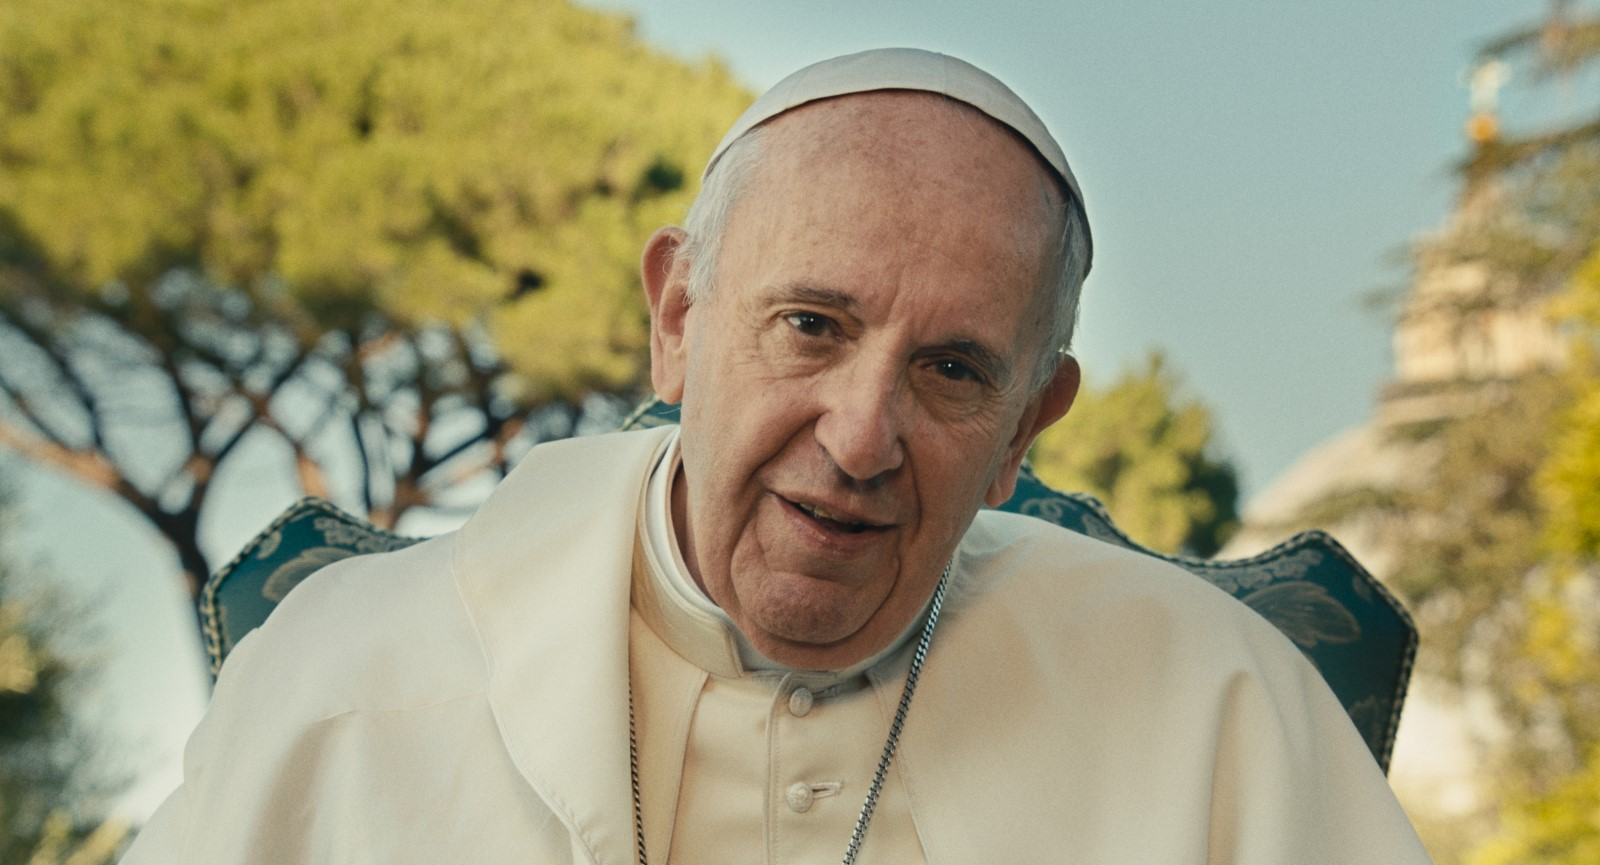 © POPE FRANCIS - A MAN OF HIS WORD (c) 2018 CTV, Célestes, Solares, Neue Road Movies, Decia, PTS ARTs Factory